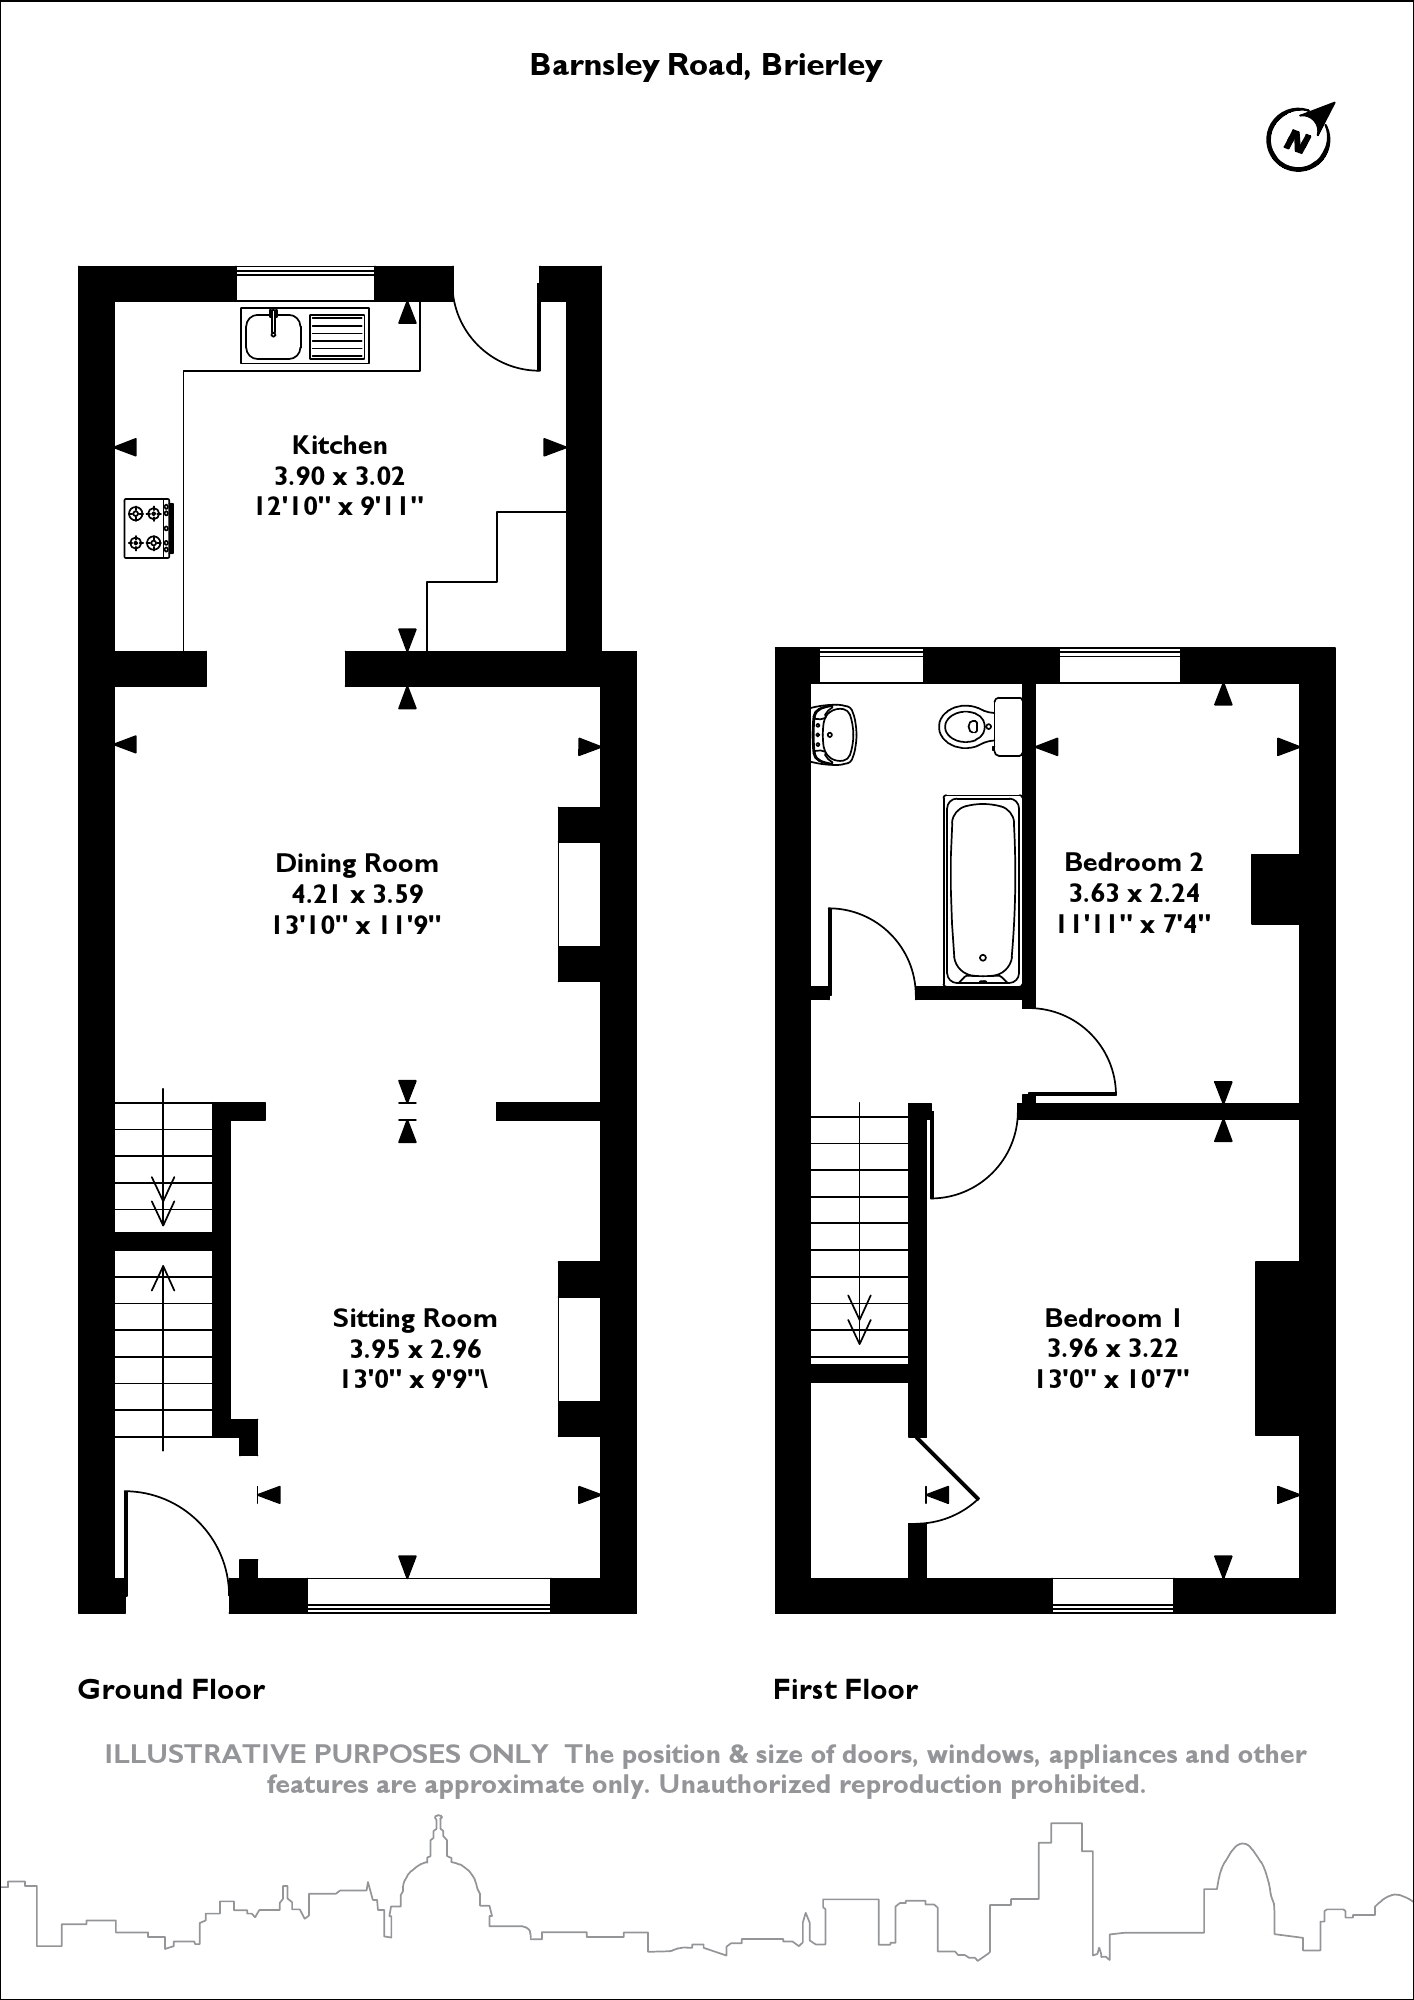 Barnsley Road, Barnsley, S72 floor plan